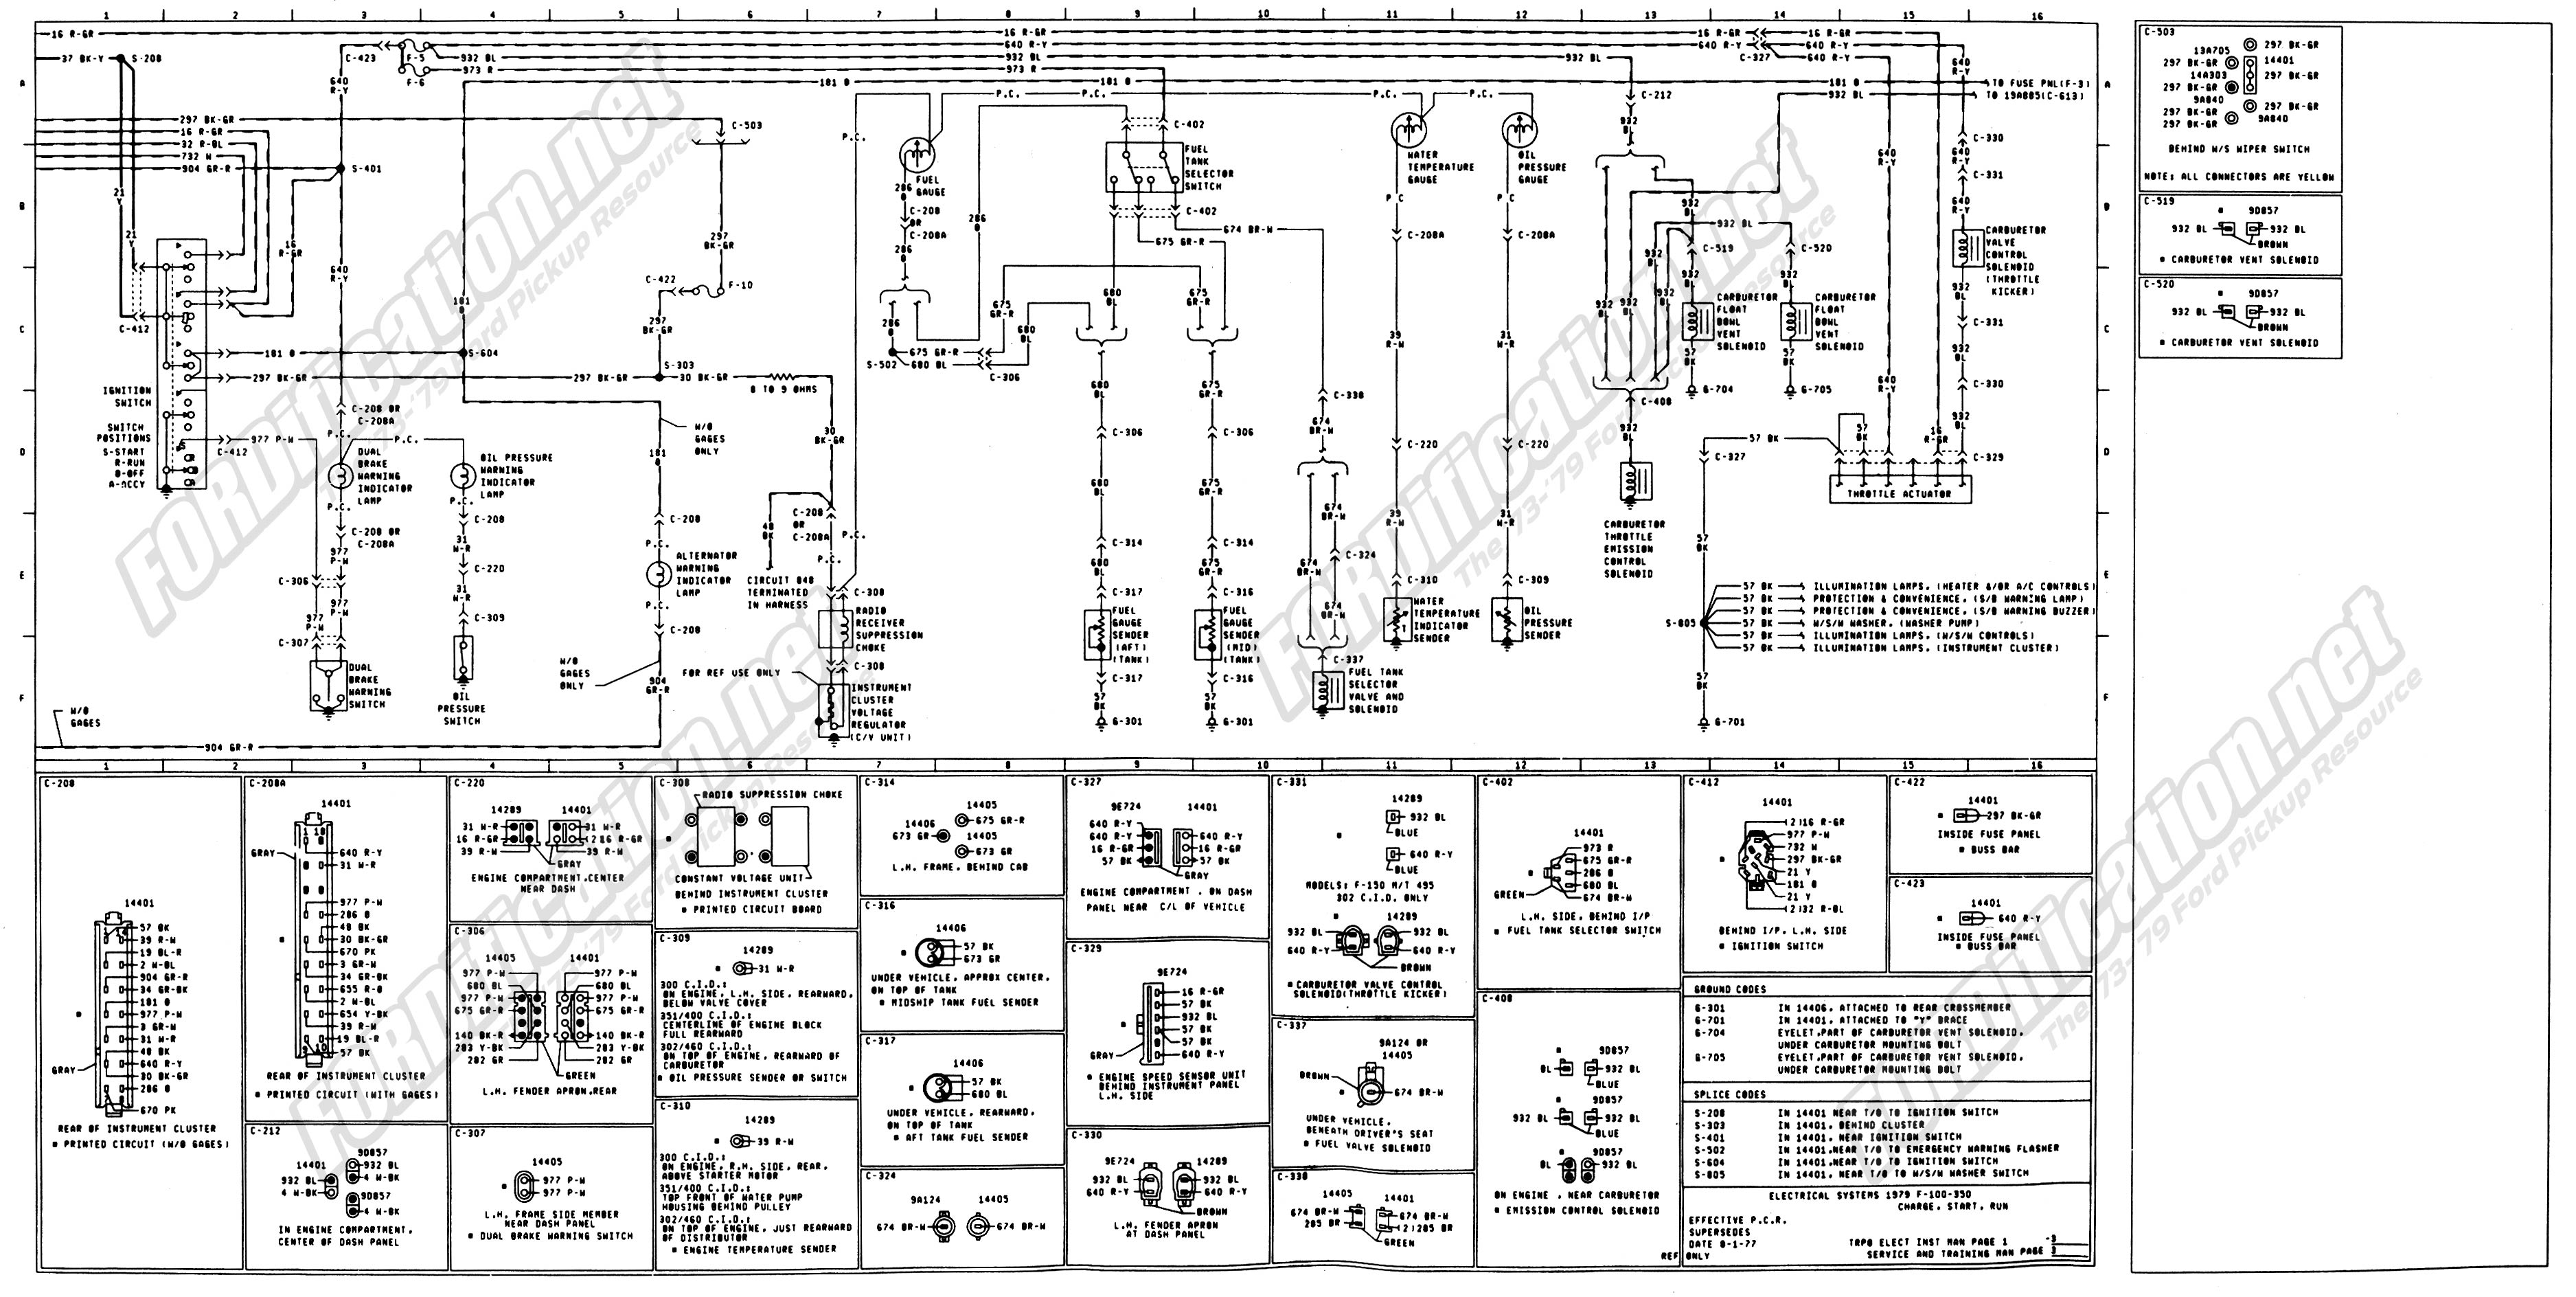 961502 Wiring Diagram Schamatic Help on 1955 chevrolet wiring diagram